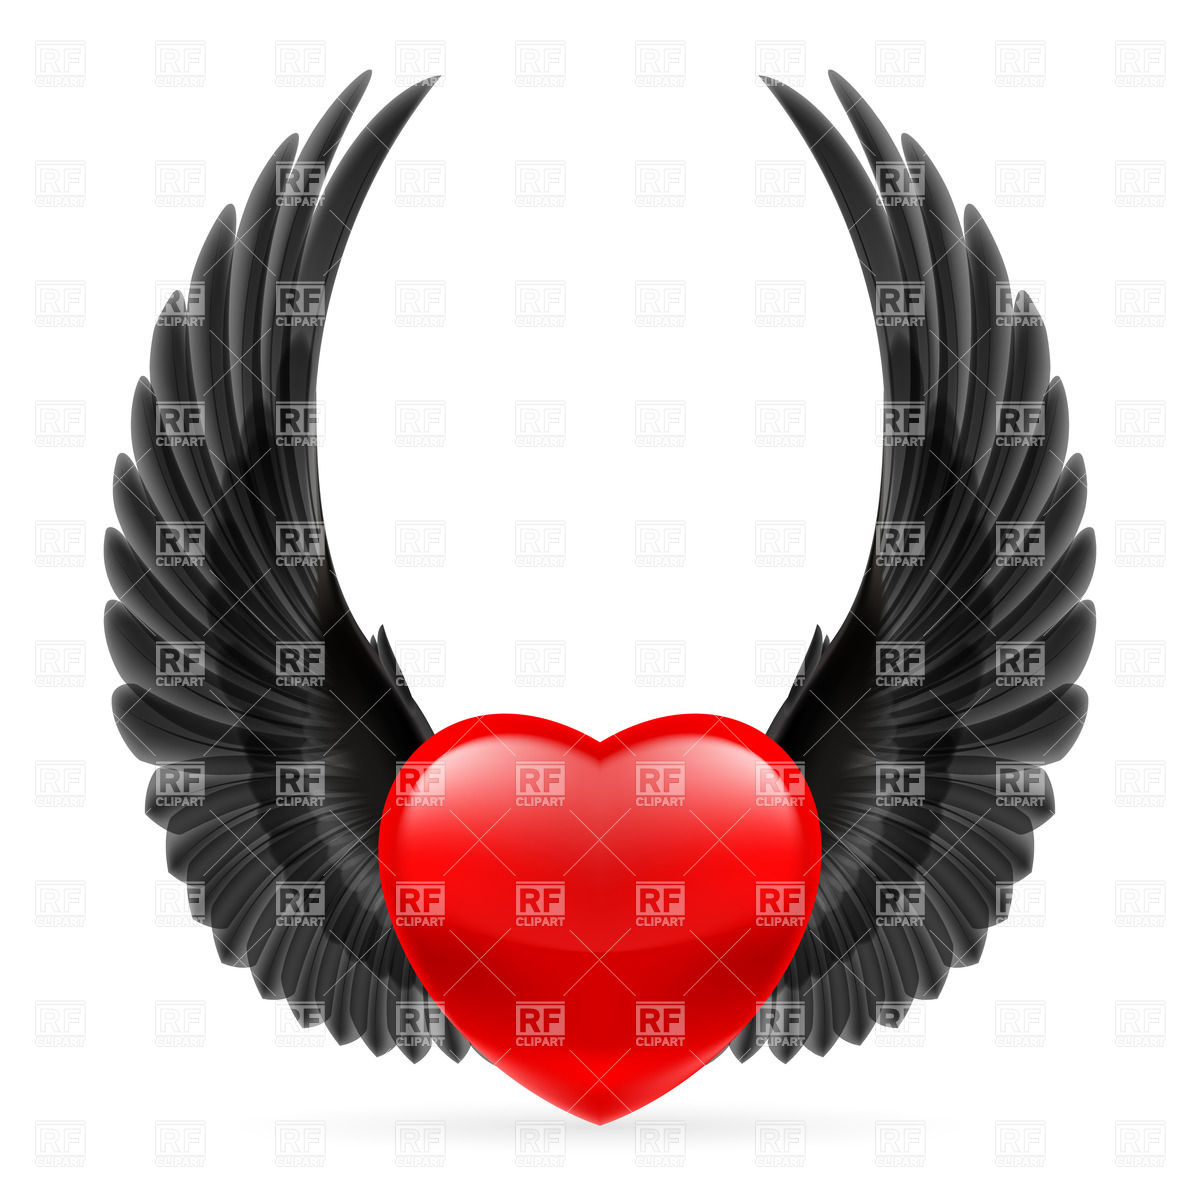 Red Heart With Black Crow Wings Up Design Elements Download Royalty